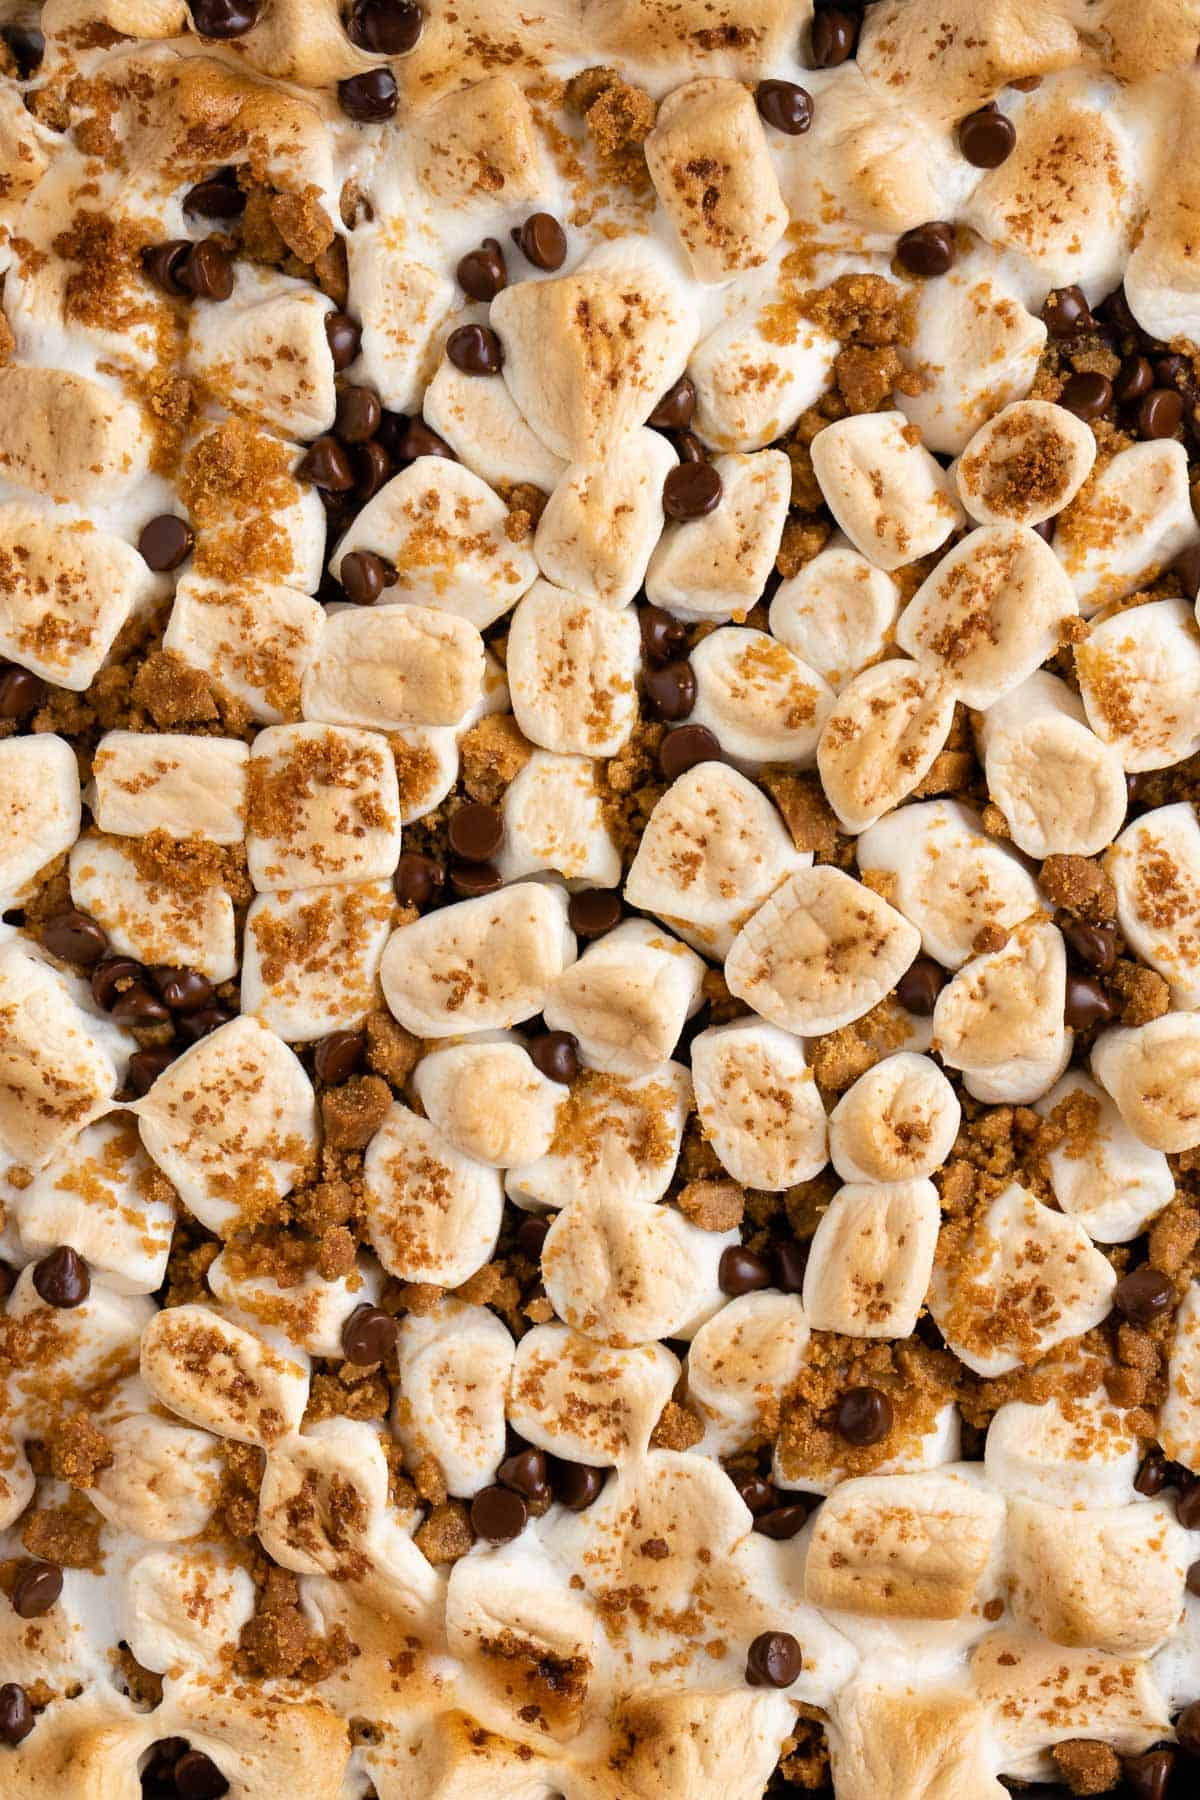 toasted marshmallows, chocolate chips, and graham cracker crumbs